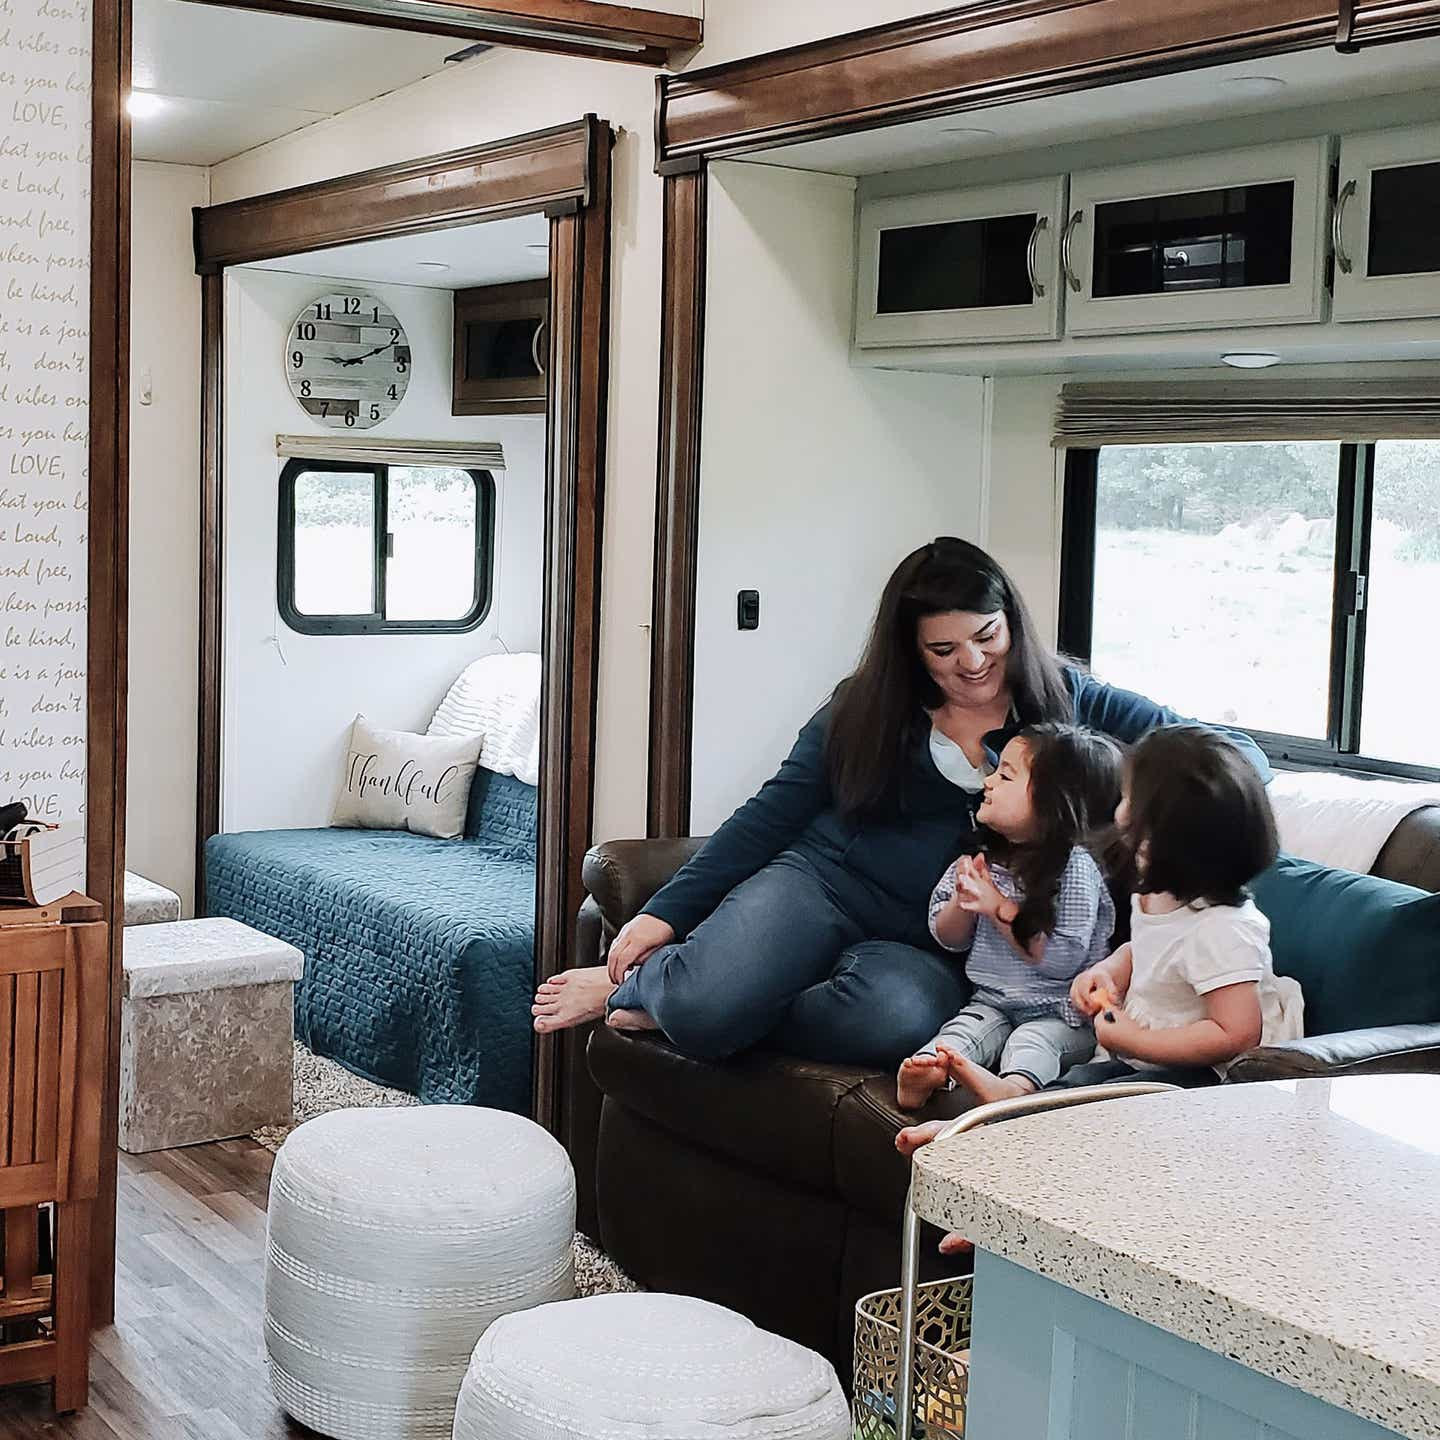 Angelica (left) sits with her two daughters in their RV.